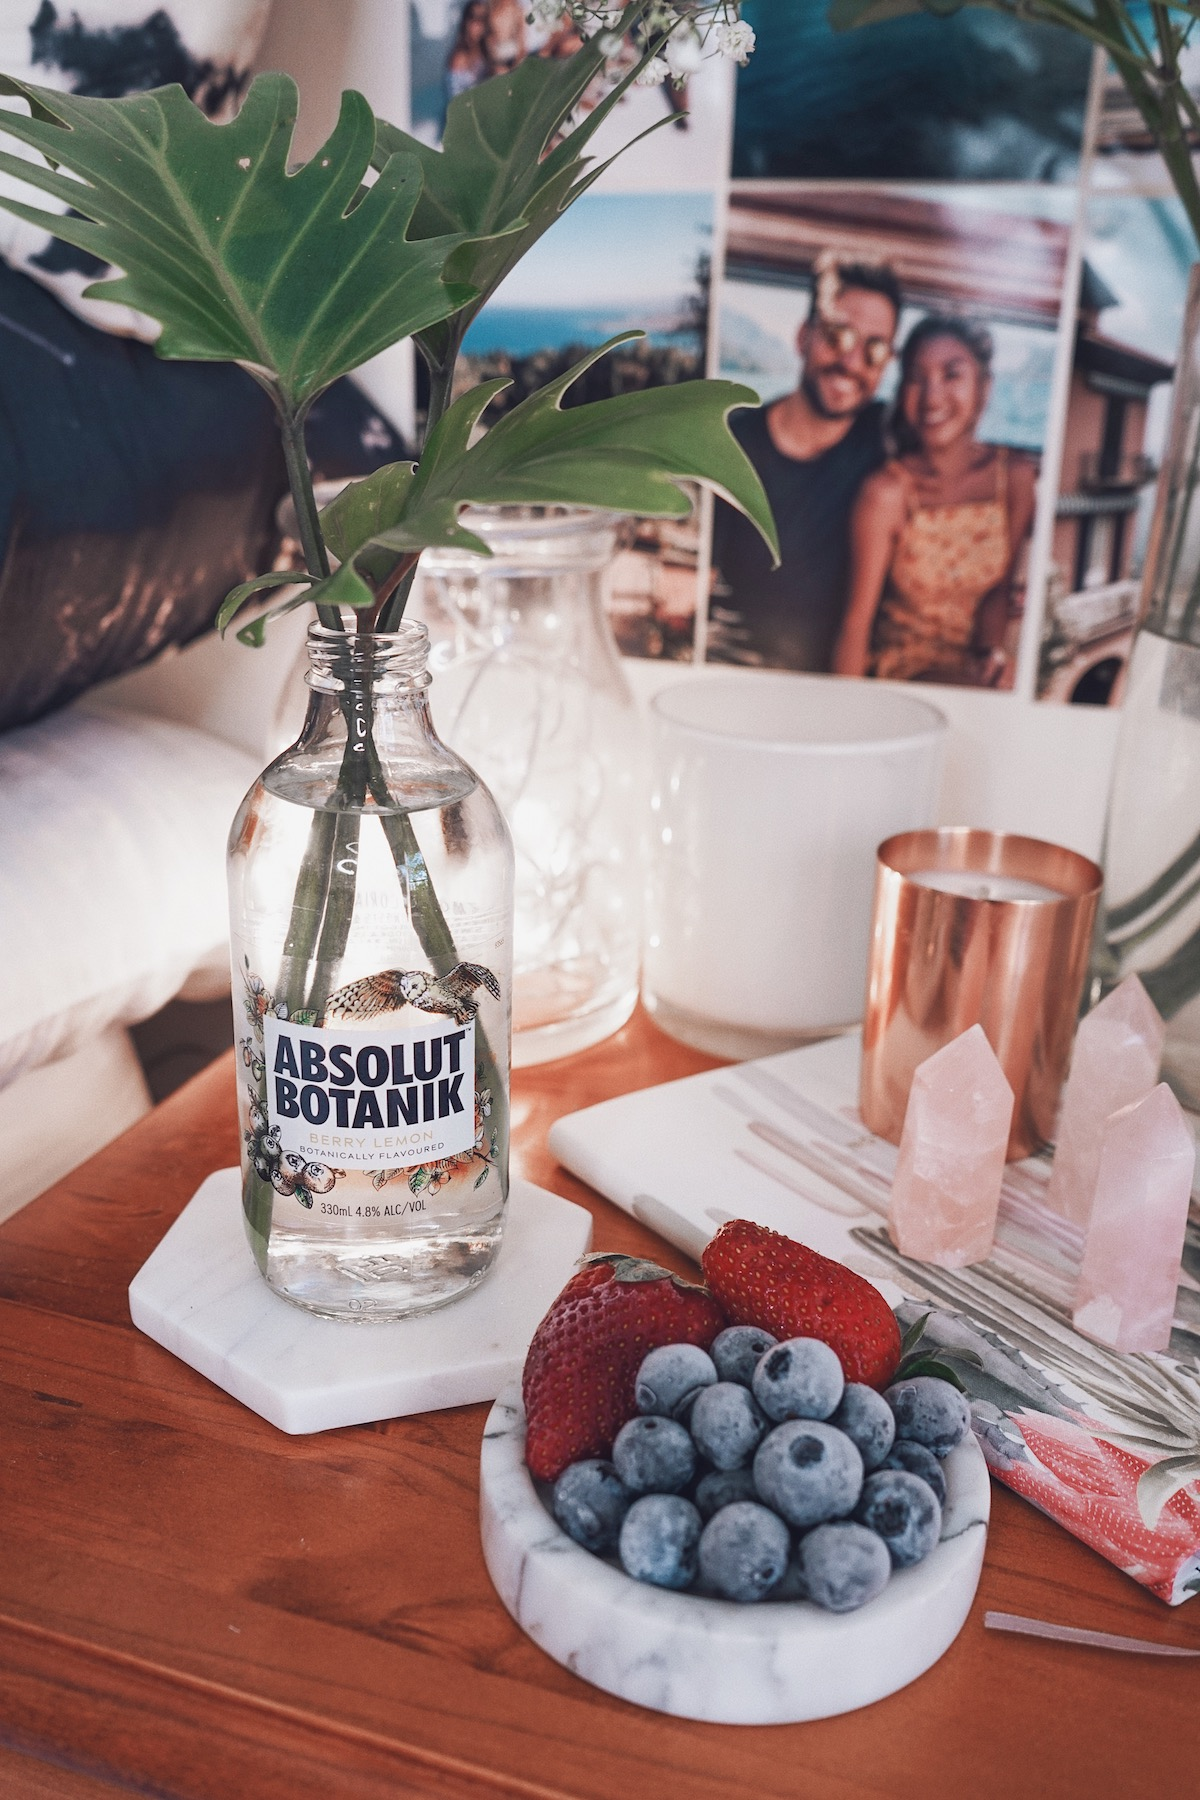 jessie-khoo-fahion-and-sounds-vodka-absolut-botanik